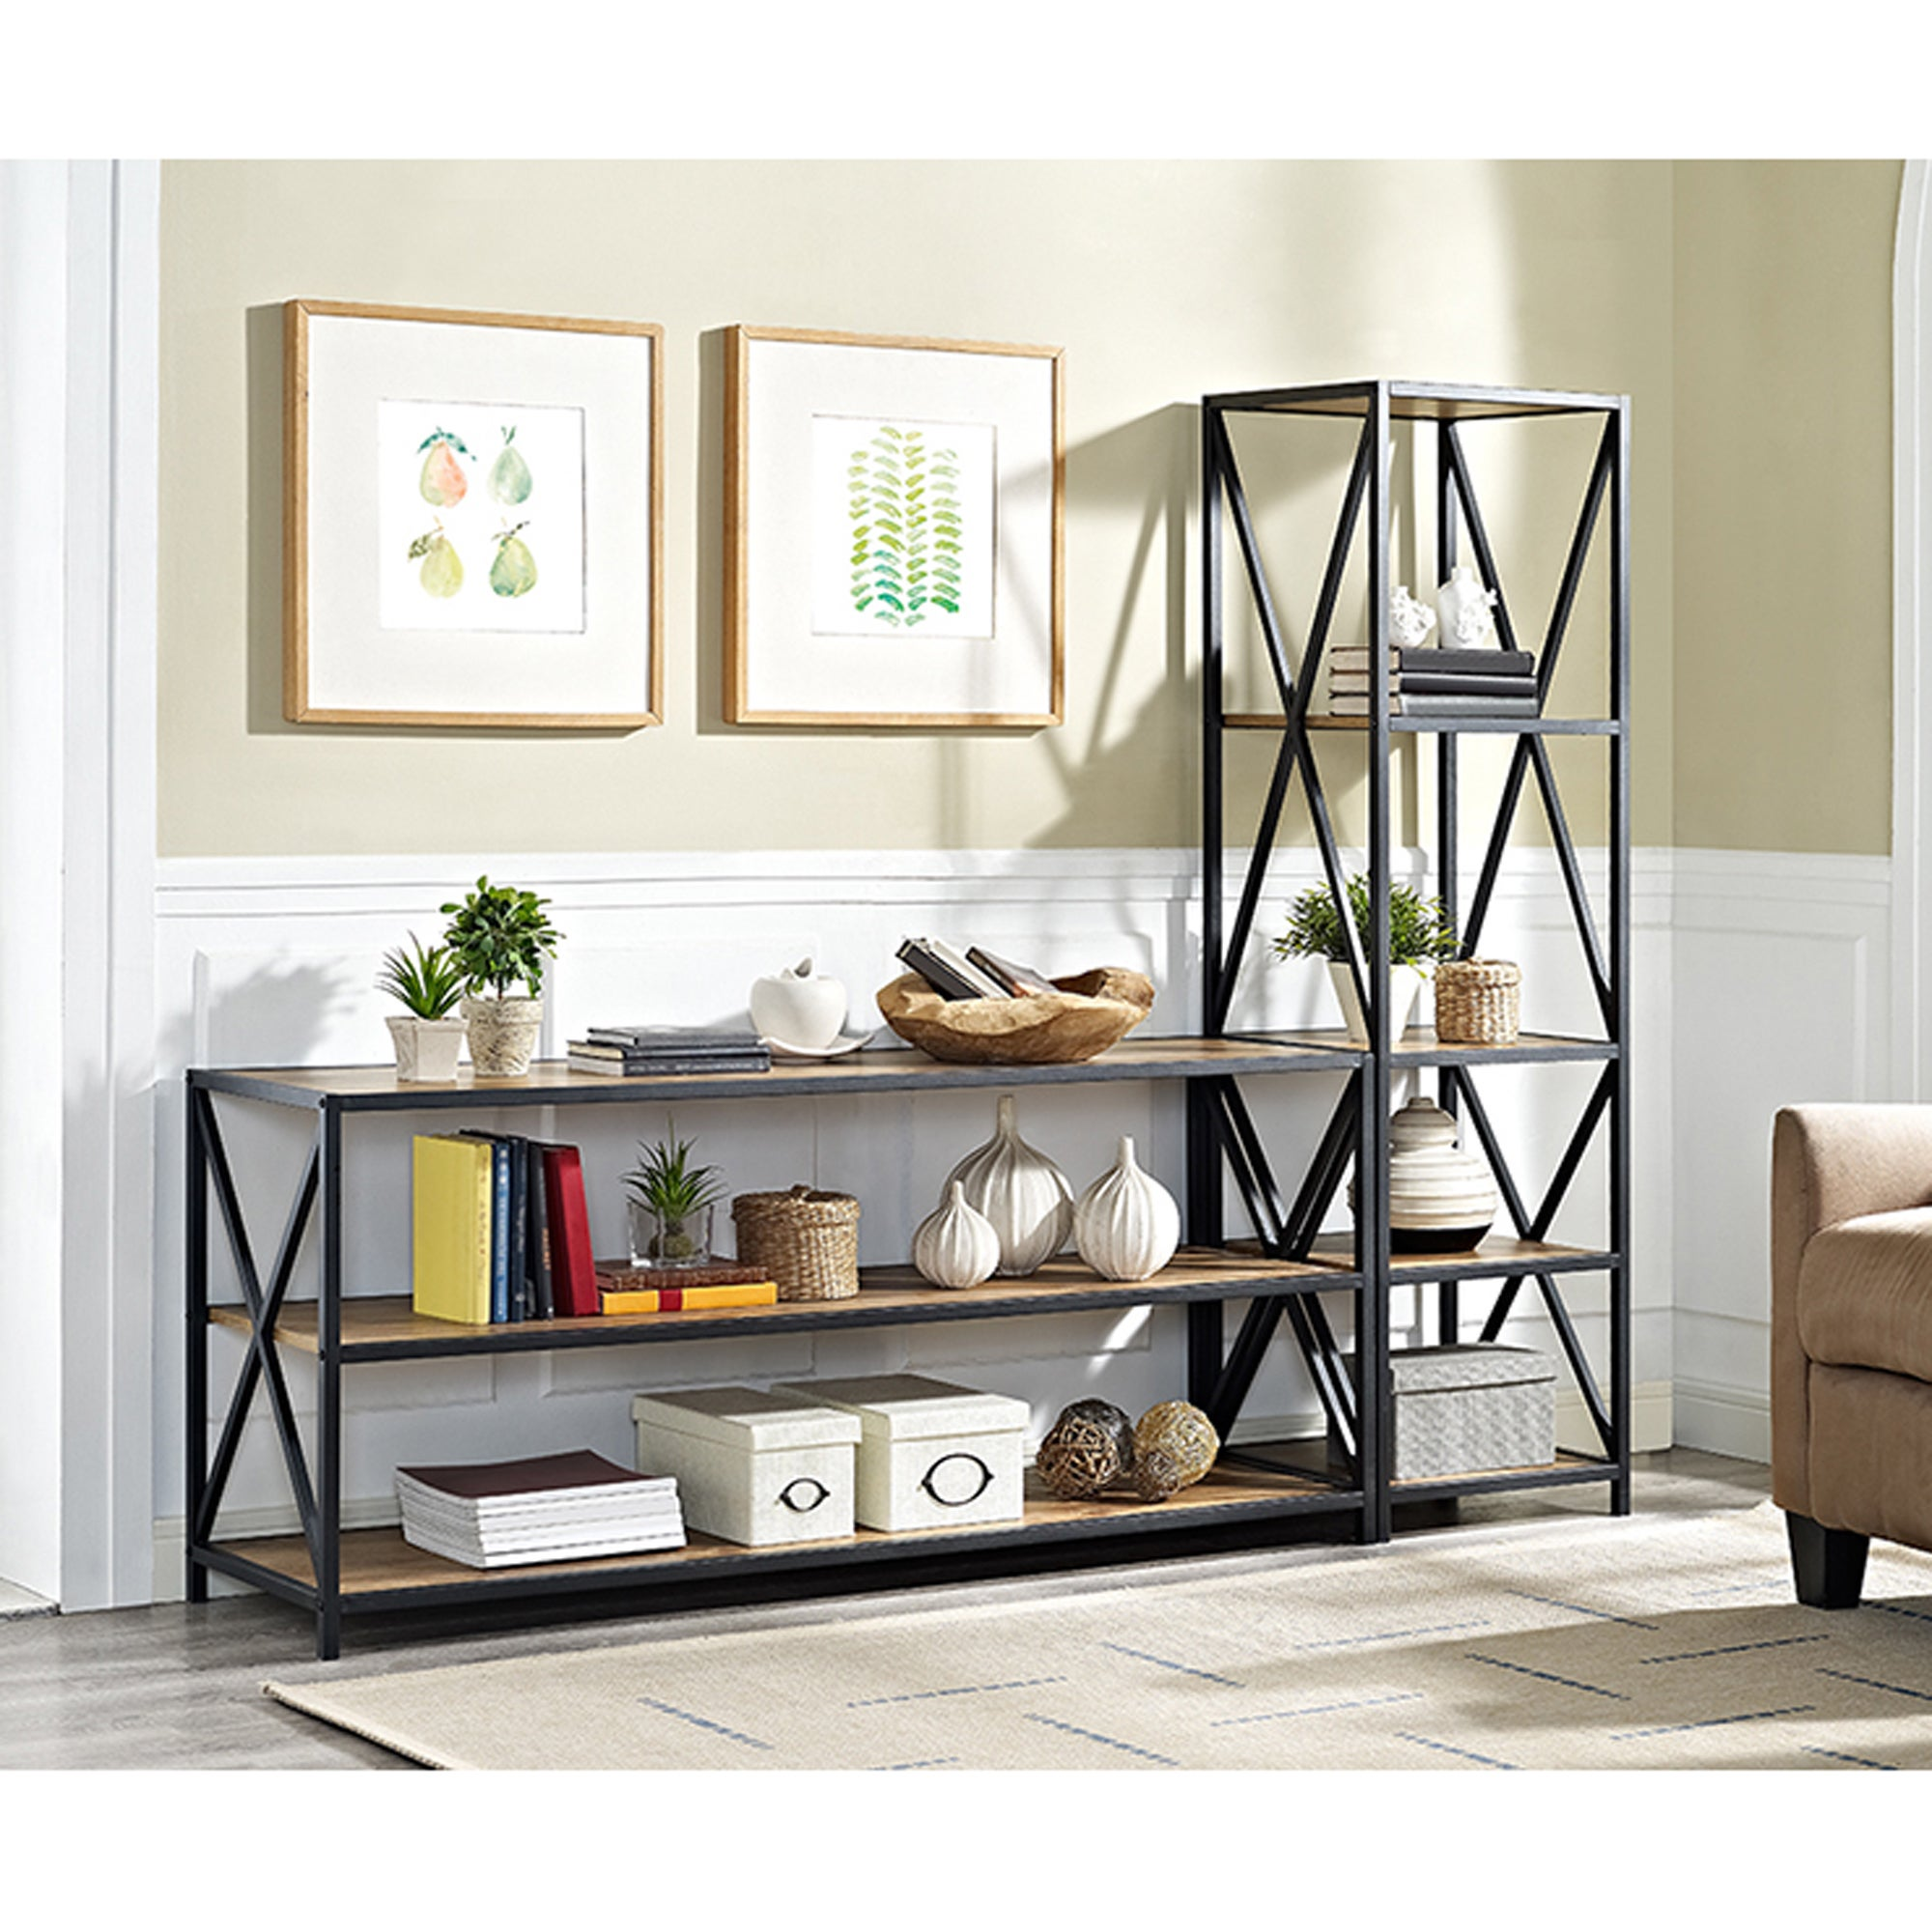 wood ebbc and x inch metal bookshelf d aginginhome frame bfc bookcase ac media